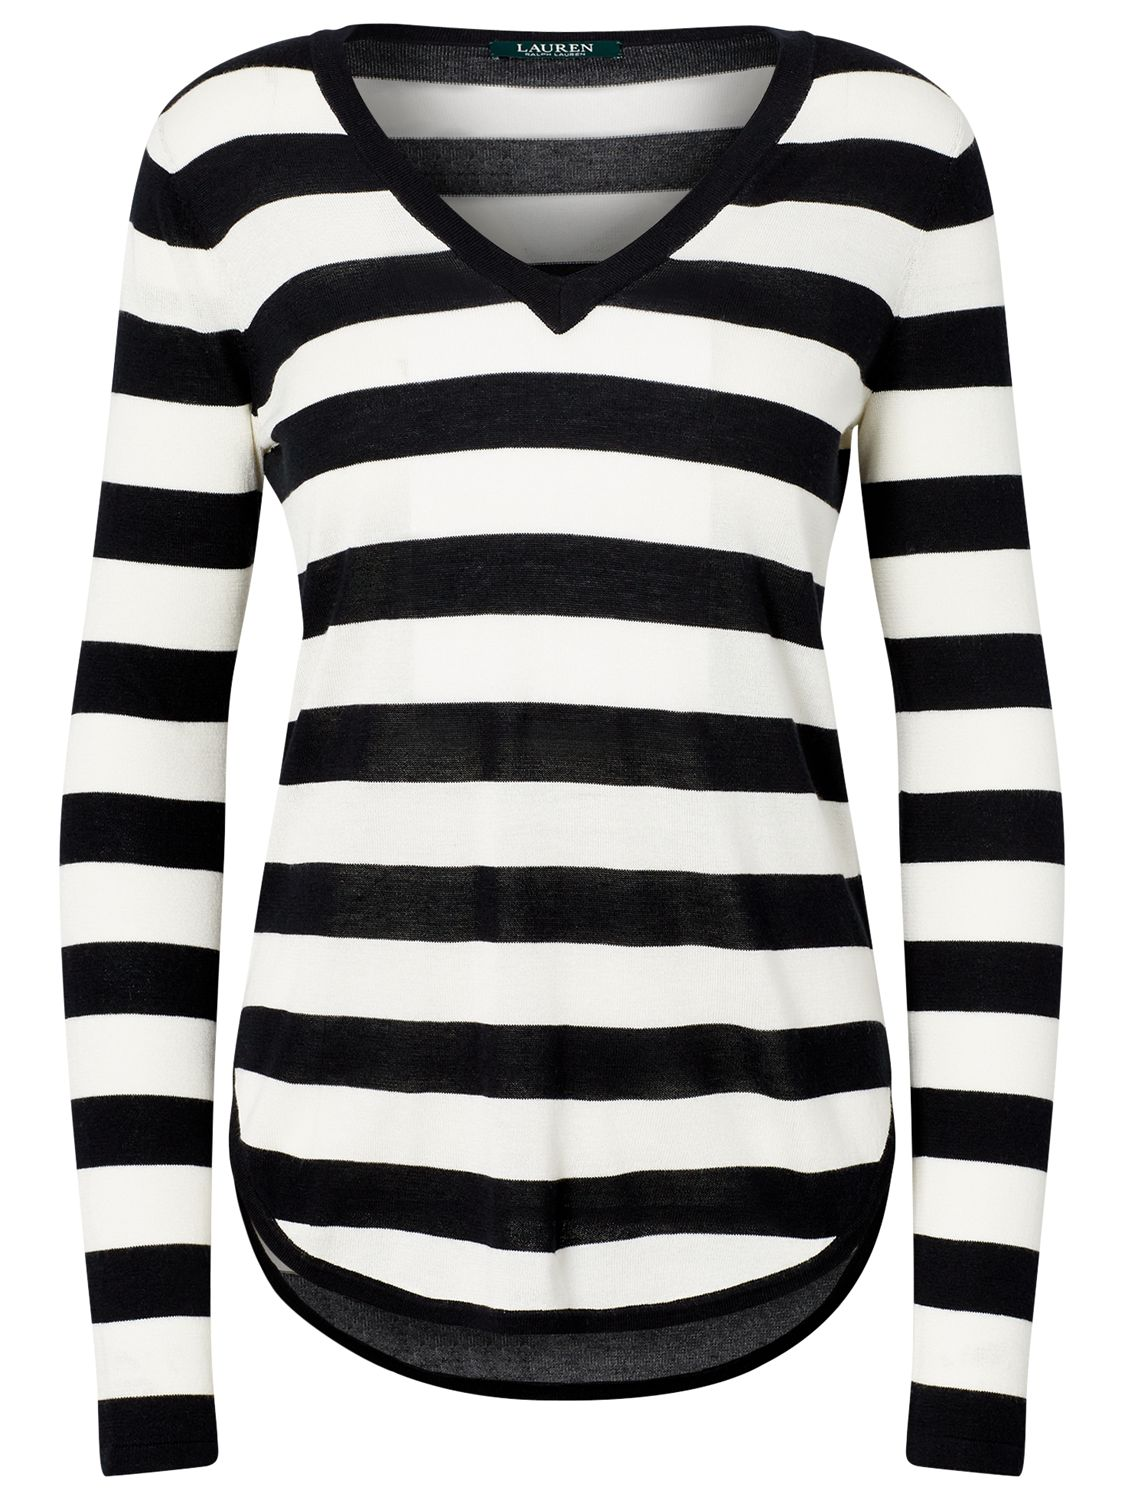 Lauren Ralph Lauren Lauren Ralph Lauren Stripe V-Neck Jumper, Polo Black/White